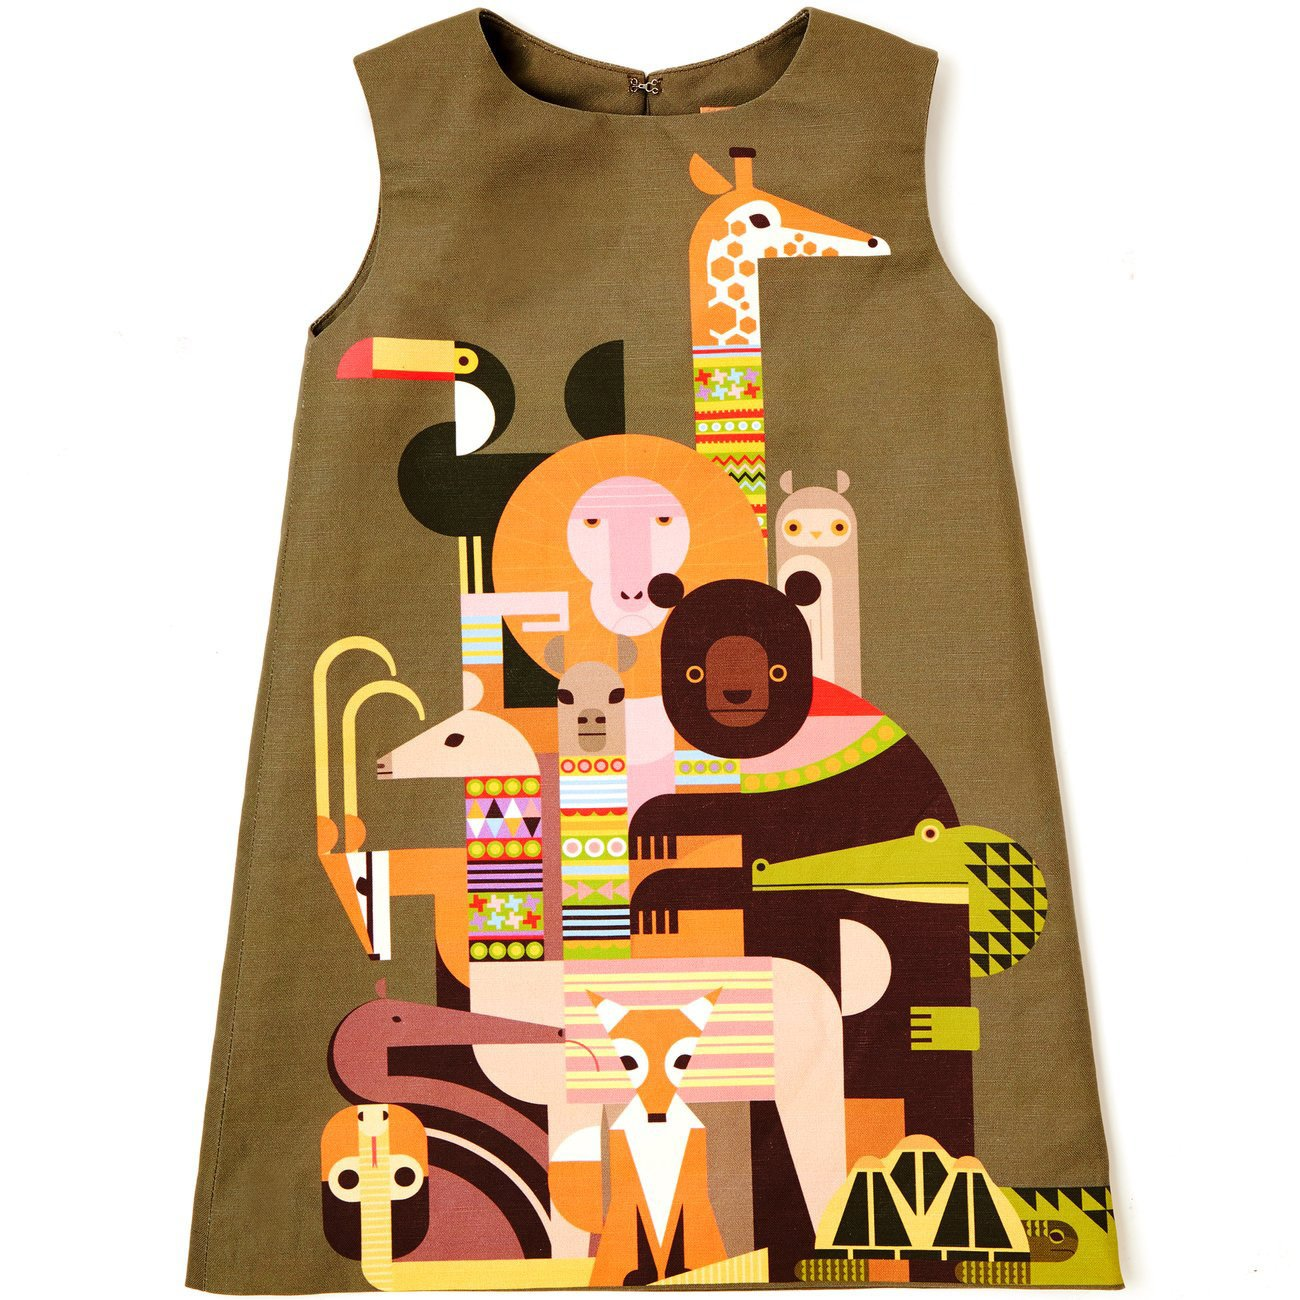 Inspired by a series of books, Oldham's arts-and-crafts line, Kid Made Modern, was launched in 2015 and expanded to include clothing like the Menagerie Dress last year. The animal print is by Patrick Hruby, one of several artists Oldham enlisted to create Kid Made Modern coloring books.